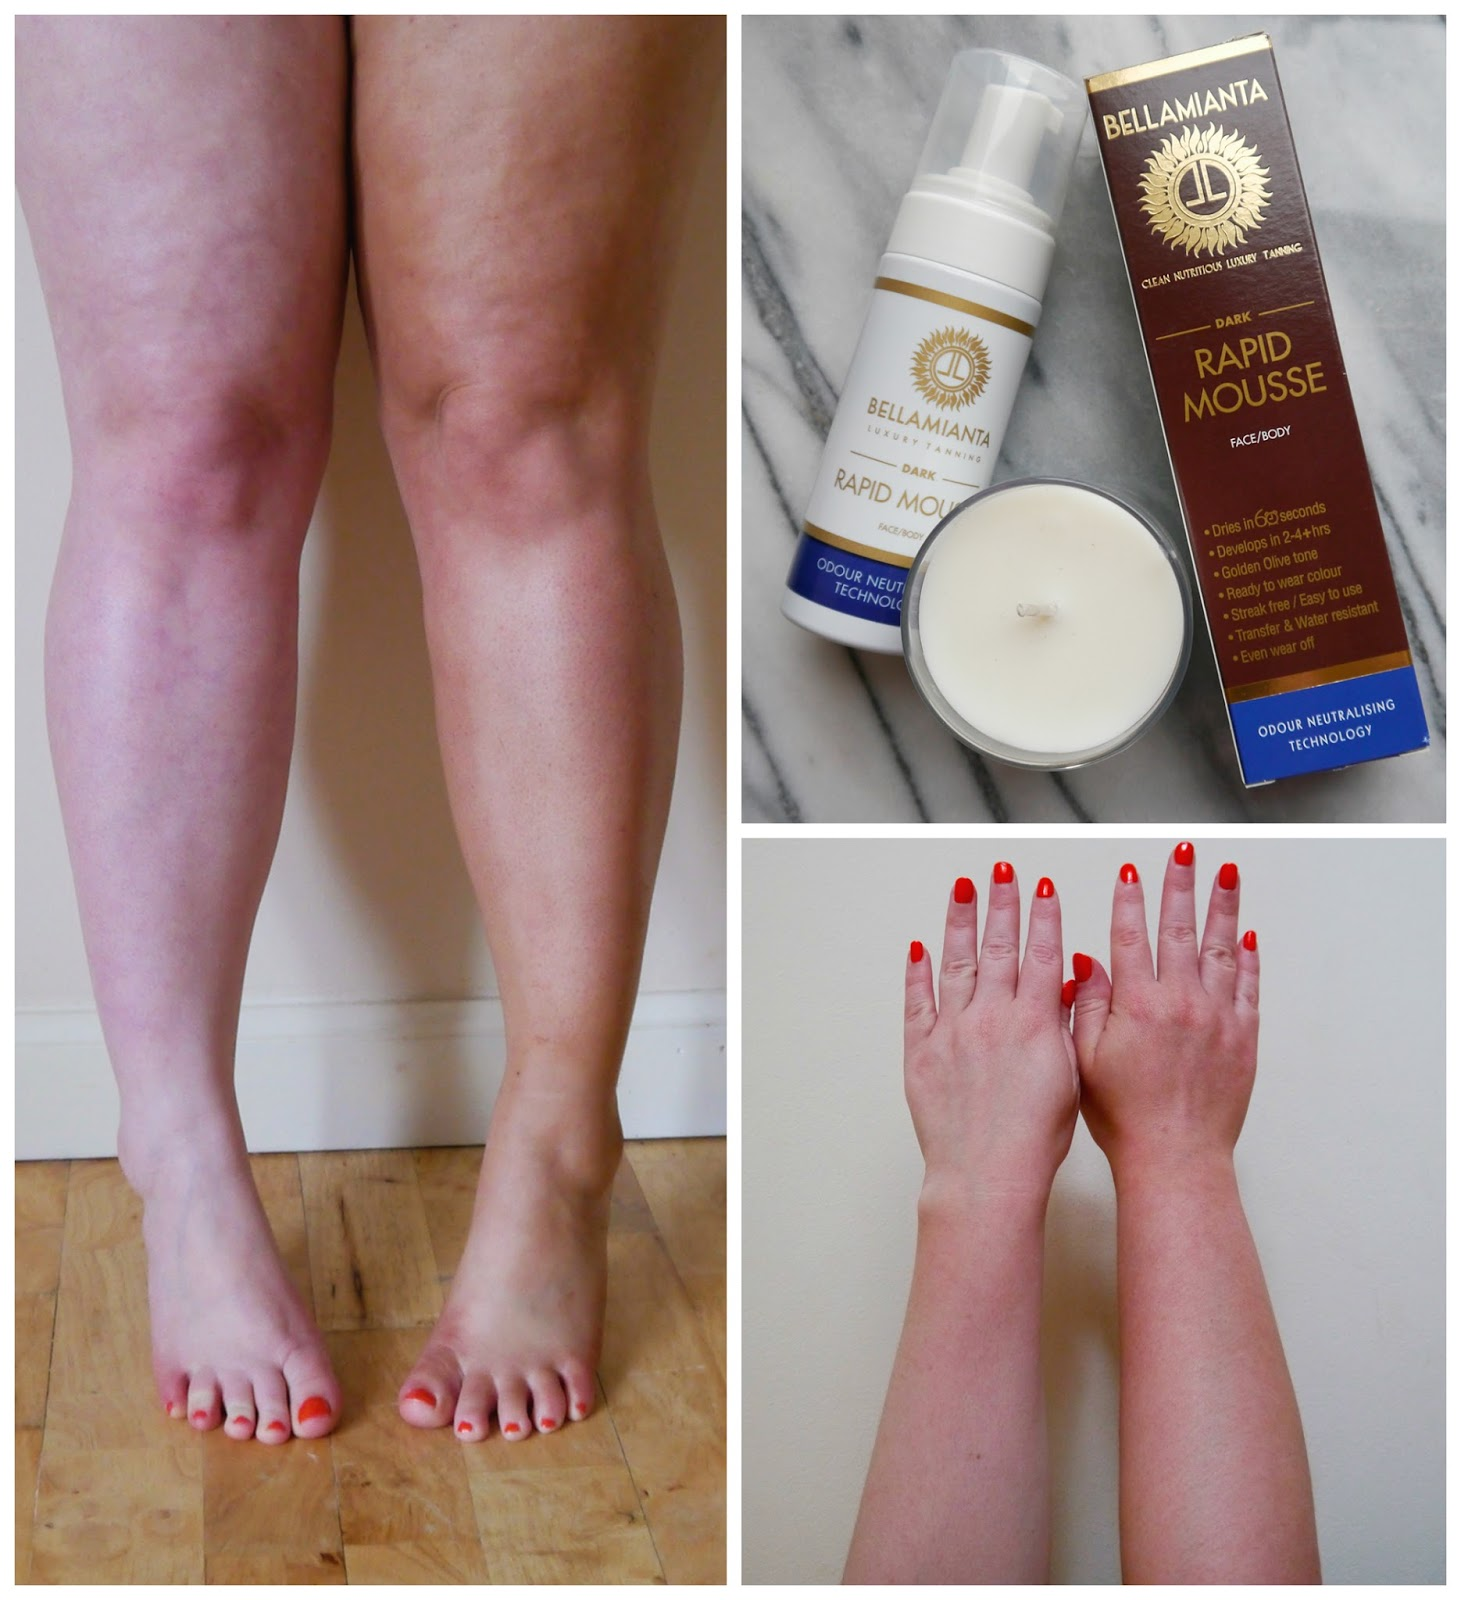 Wardrobe Conversations, Scottish blogger, Edinburgh Blogger, summer tan, fake tan, natural fake tan, easy fake tan, tanning tips, Bellamianta fake tan, tanning mousse, before and after tanning, fake tan test